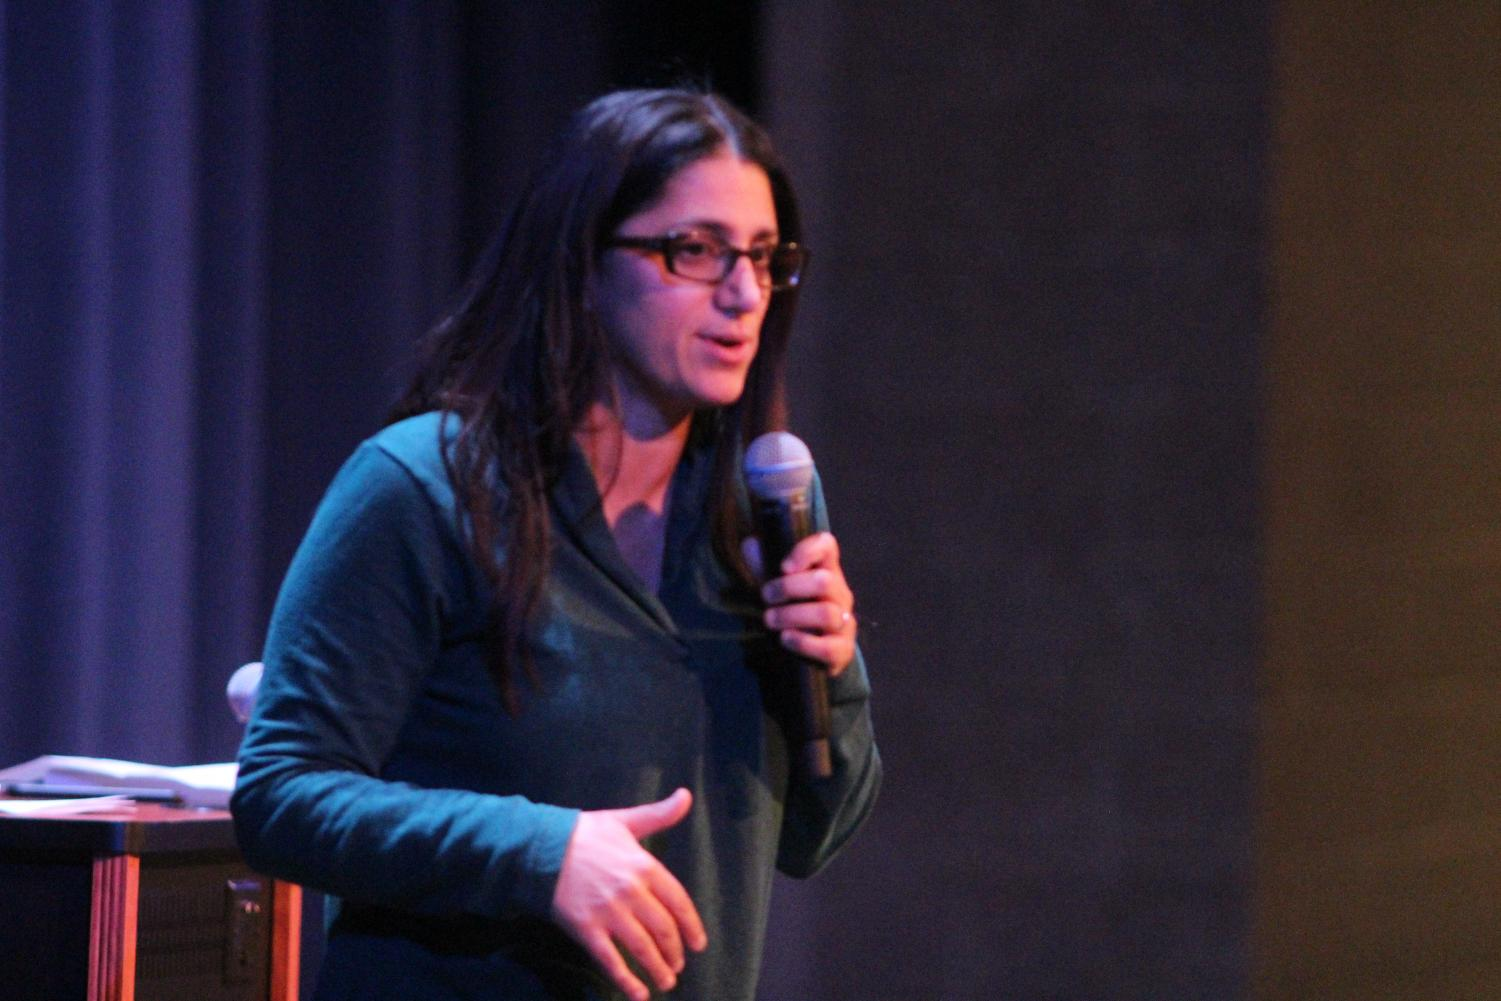 Dr. Mona Hanna-Attisha speaks to students during fifth hour in the auditorium.